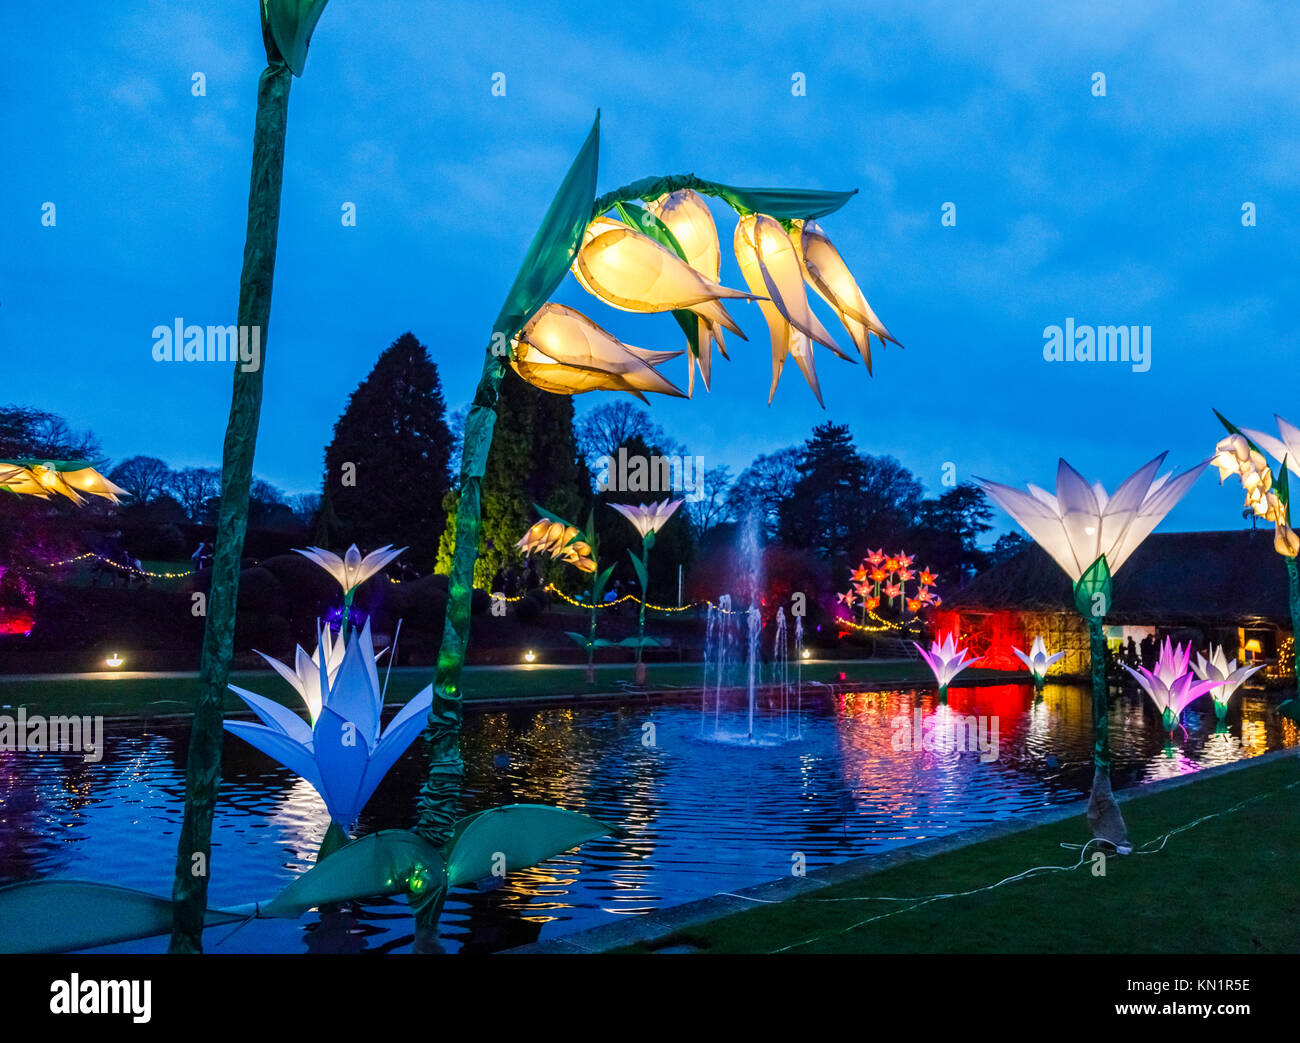 Wisley, Surrey, UK, 09th December 2017. Glowing, illuminated, fantastical giant flowers form a colourful display - Stock Image